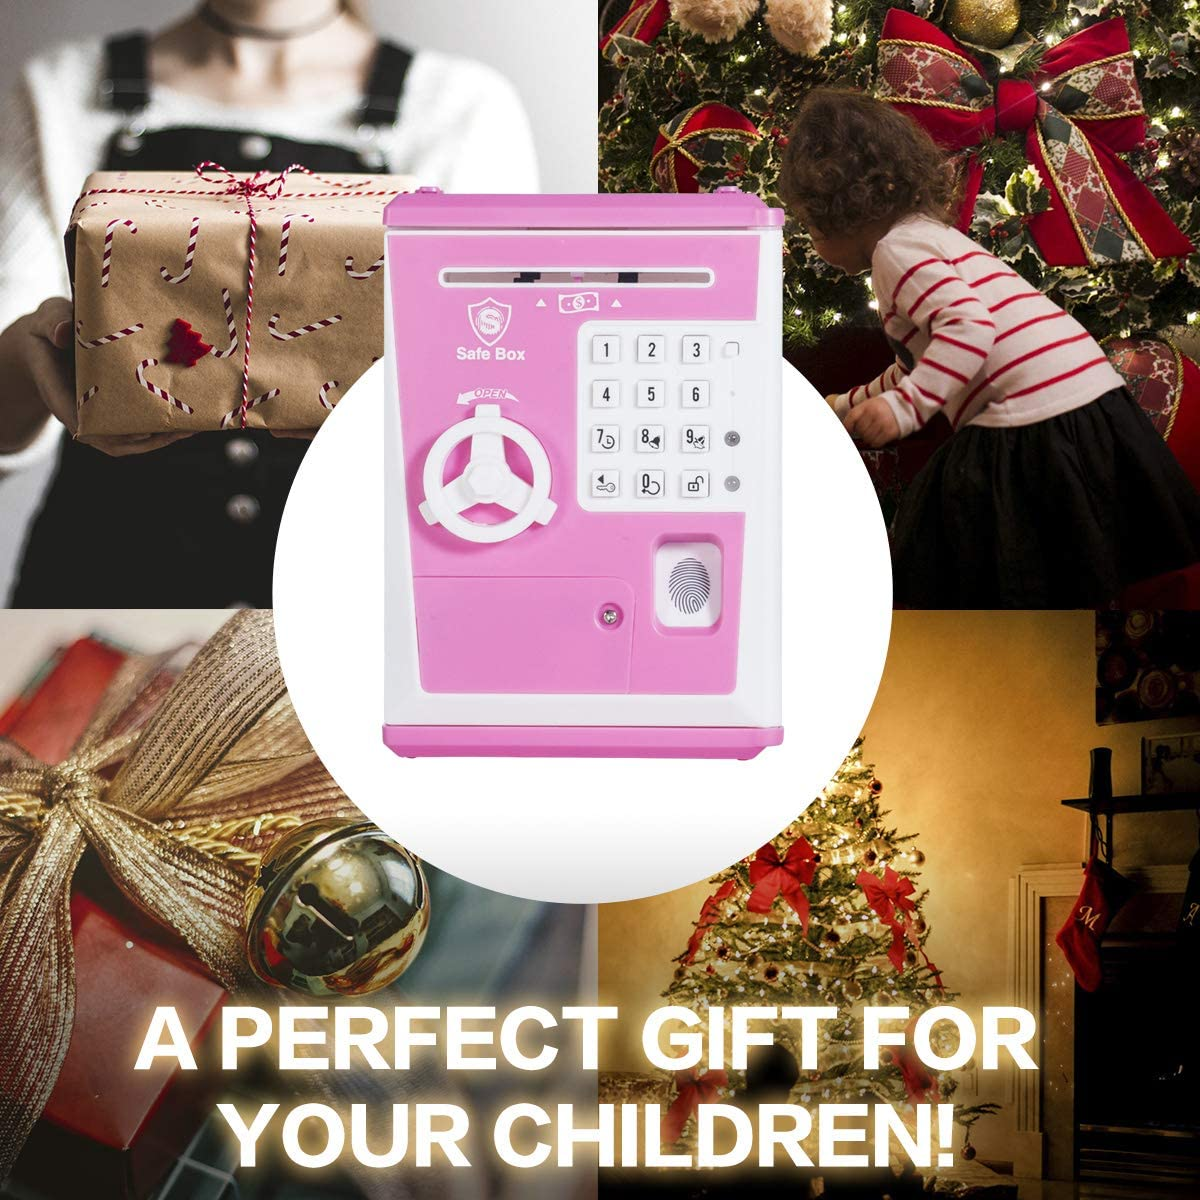 Voice Piggy Banks Fingerprint Password Kids Safe Coin Money Box Lyght Mini ATM Savings Bank for Real Money Cool Stuff Gift for Boys and Girls Pink